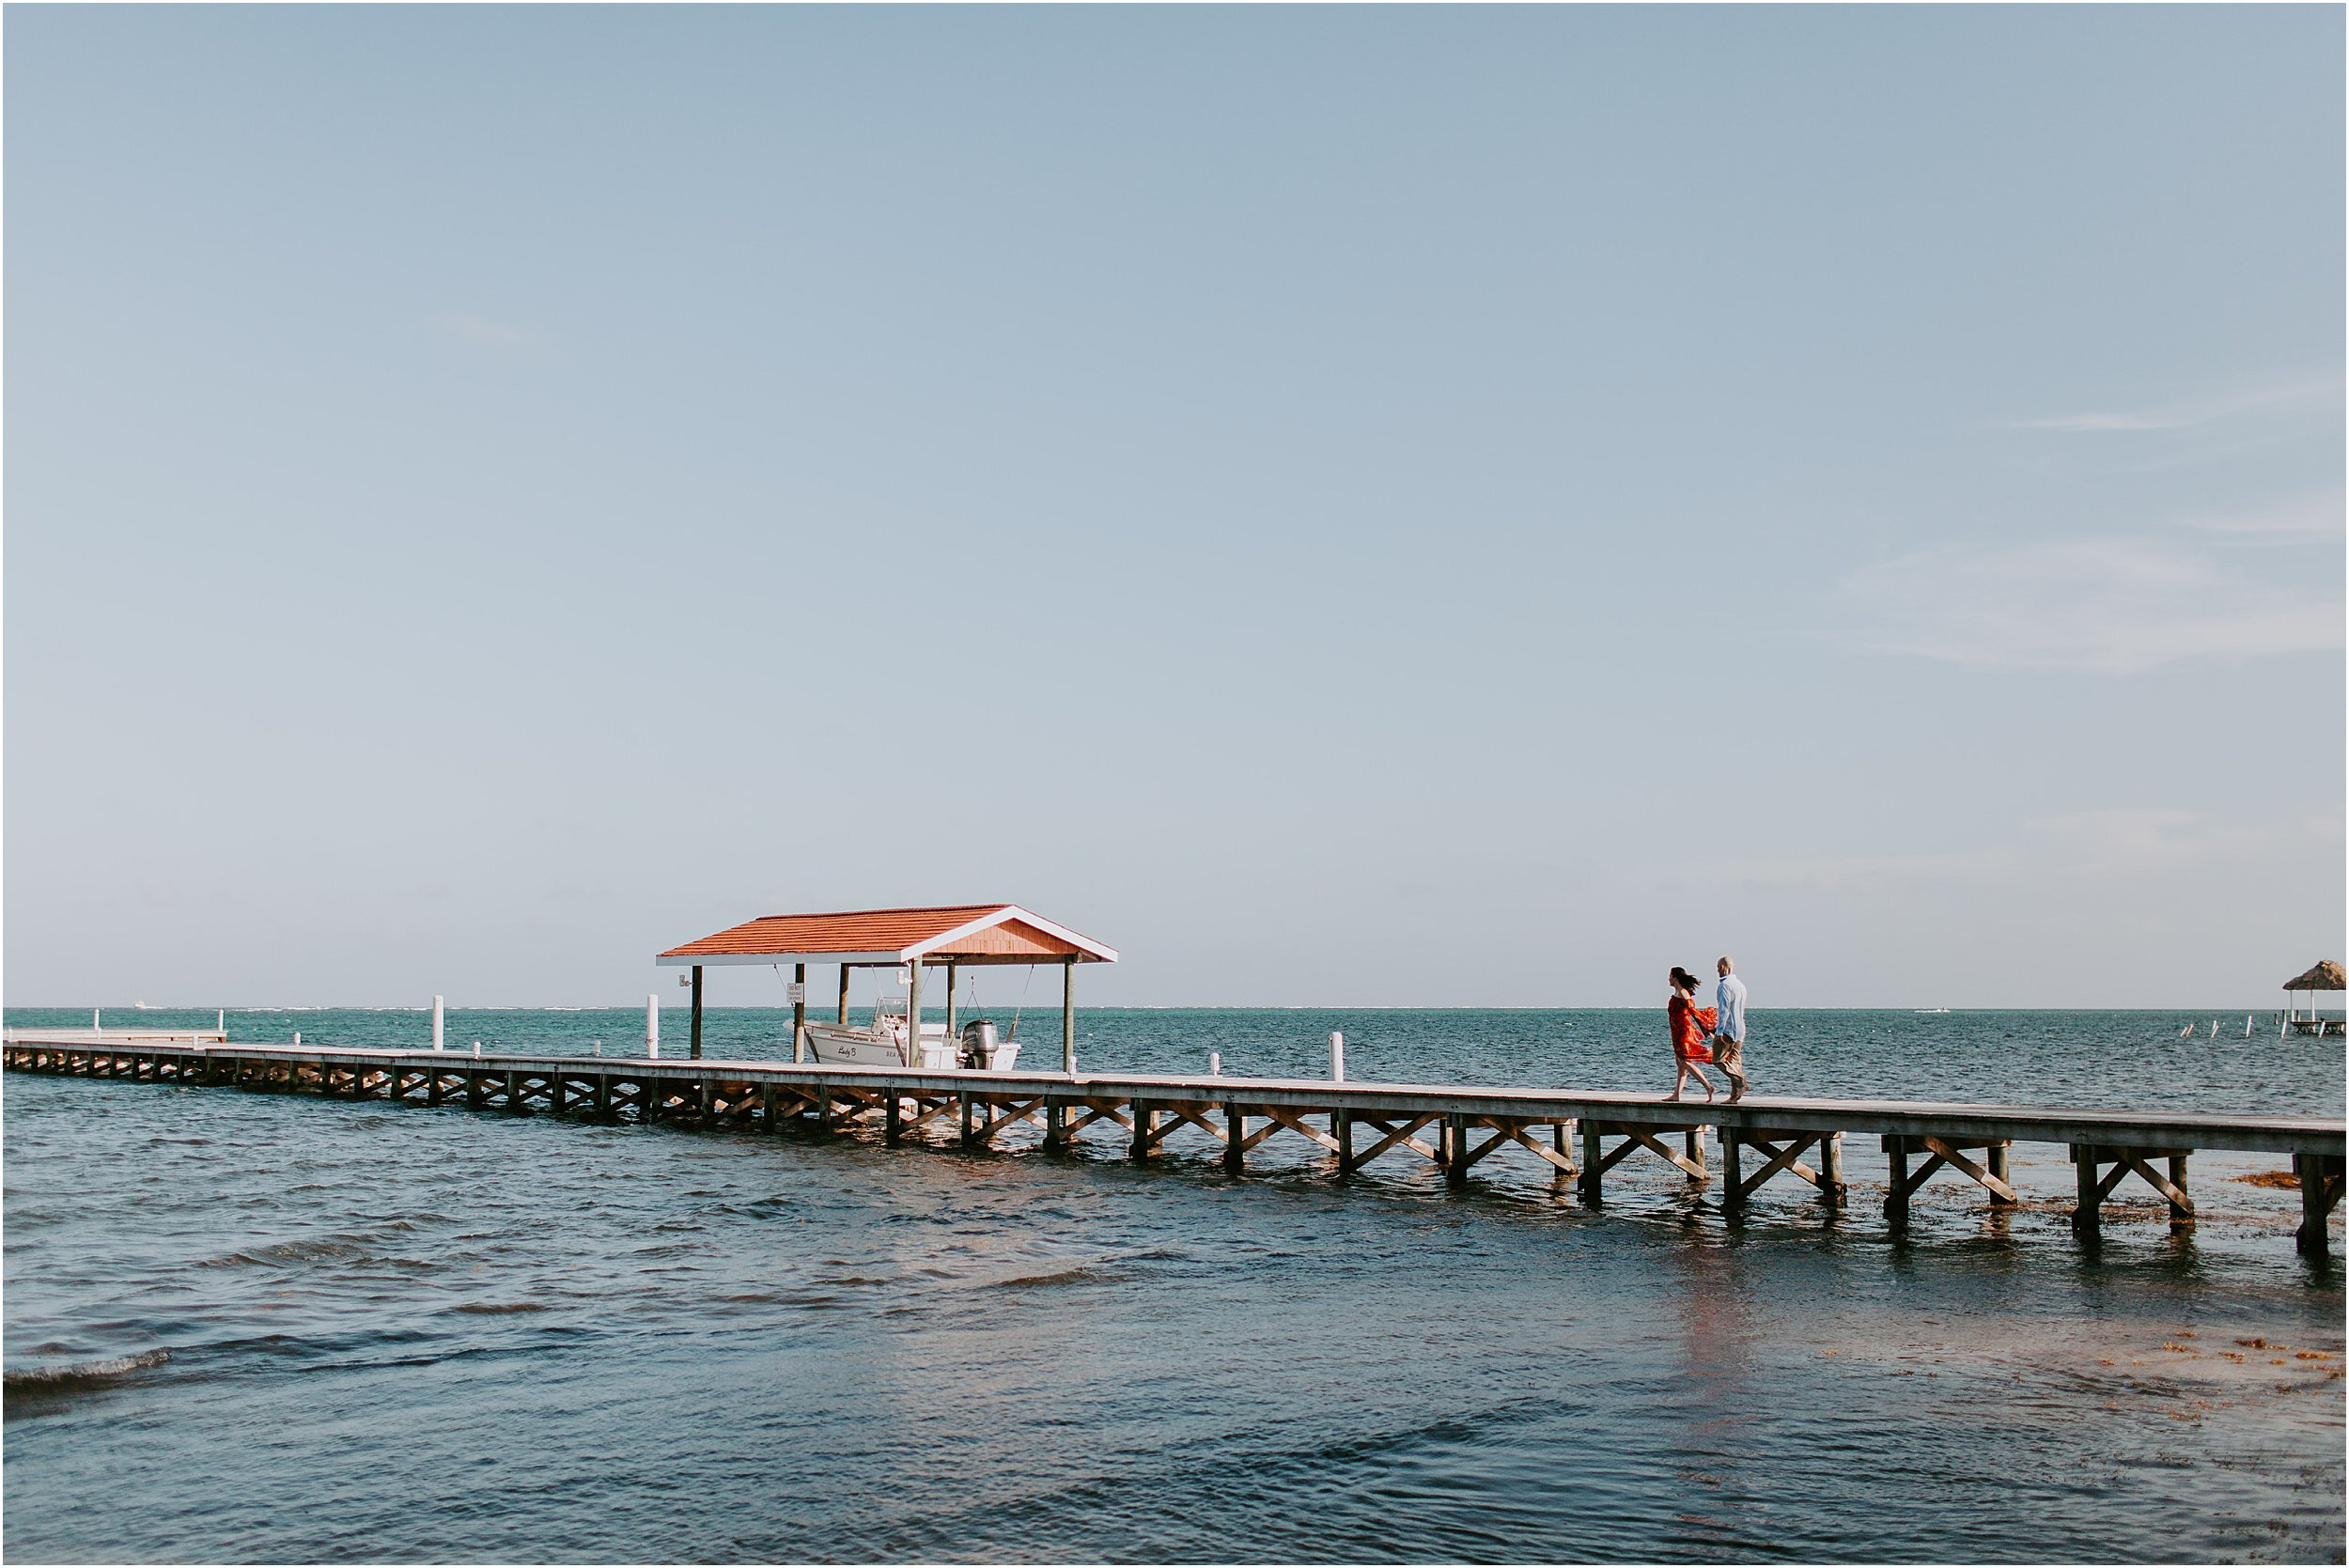 A couple walks hand in hand down a long pier surrounded by blue water and blue skies.